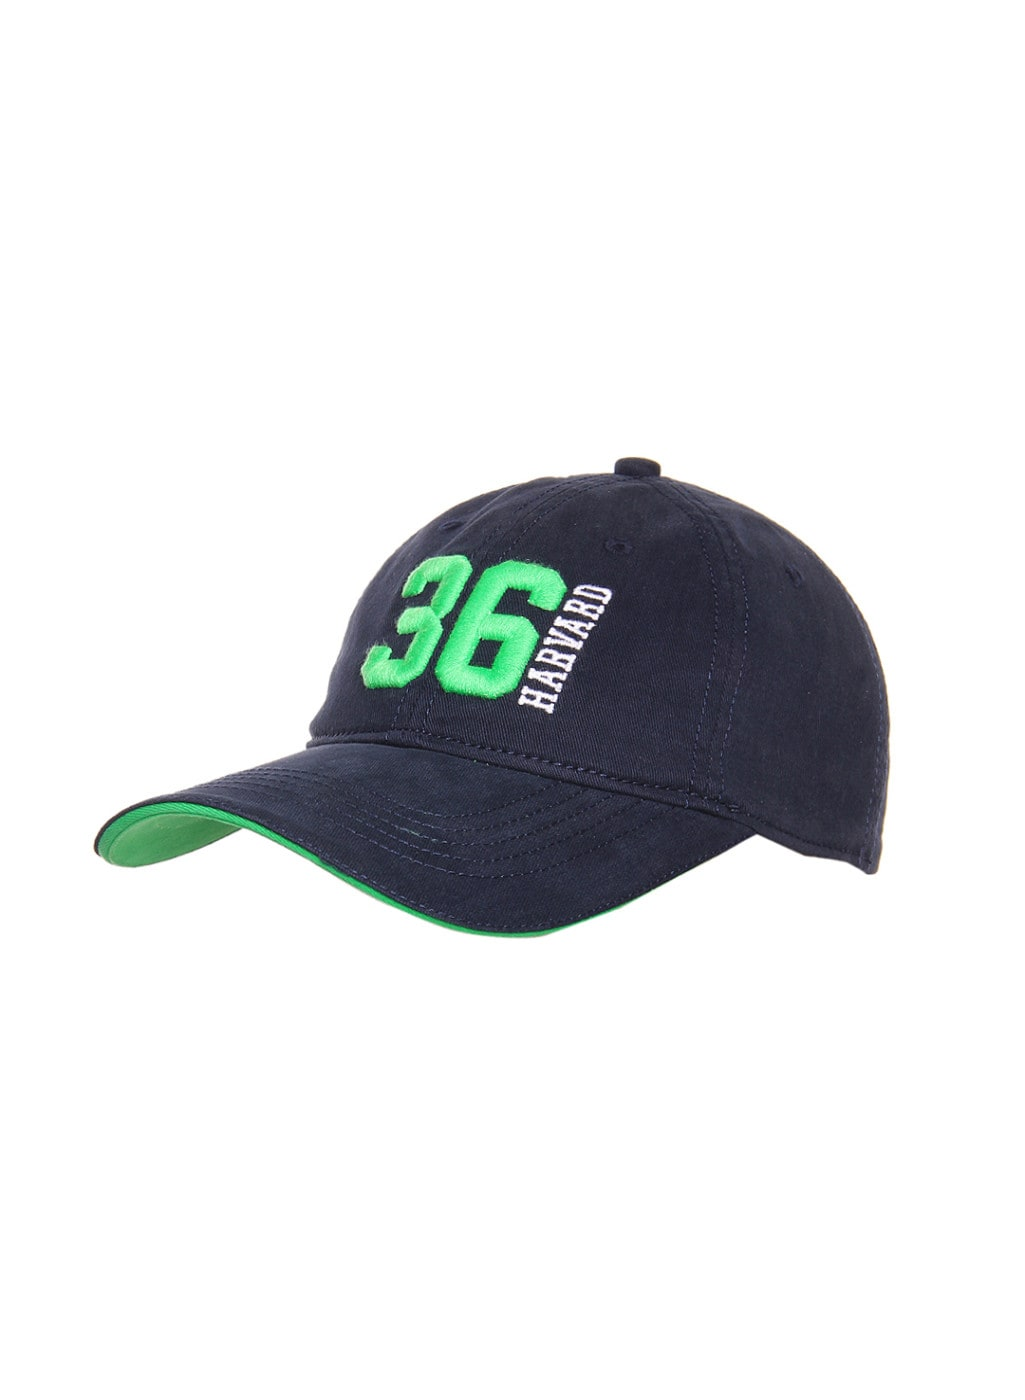 7441aad321ab9 Harvard Caps - Buy Harvard Caps Online in India - Jabong